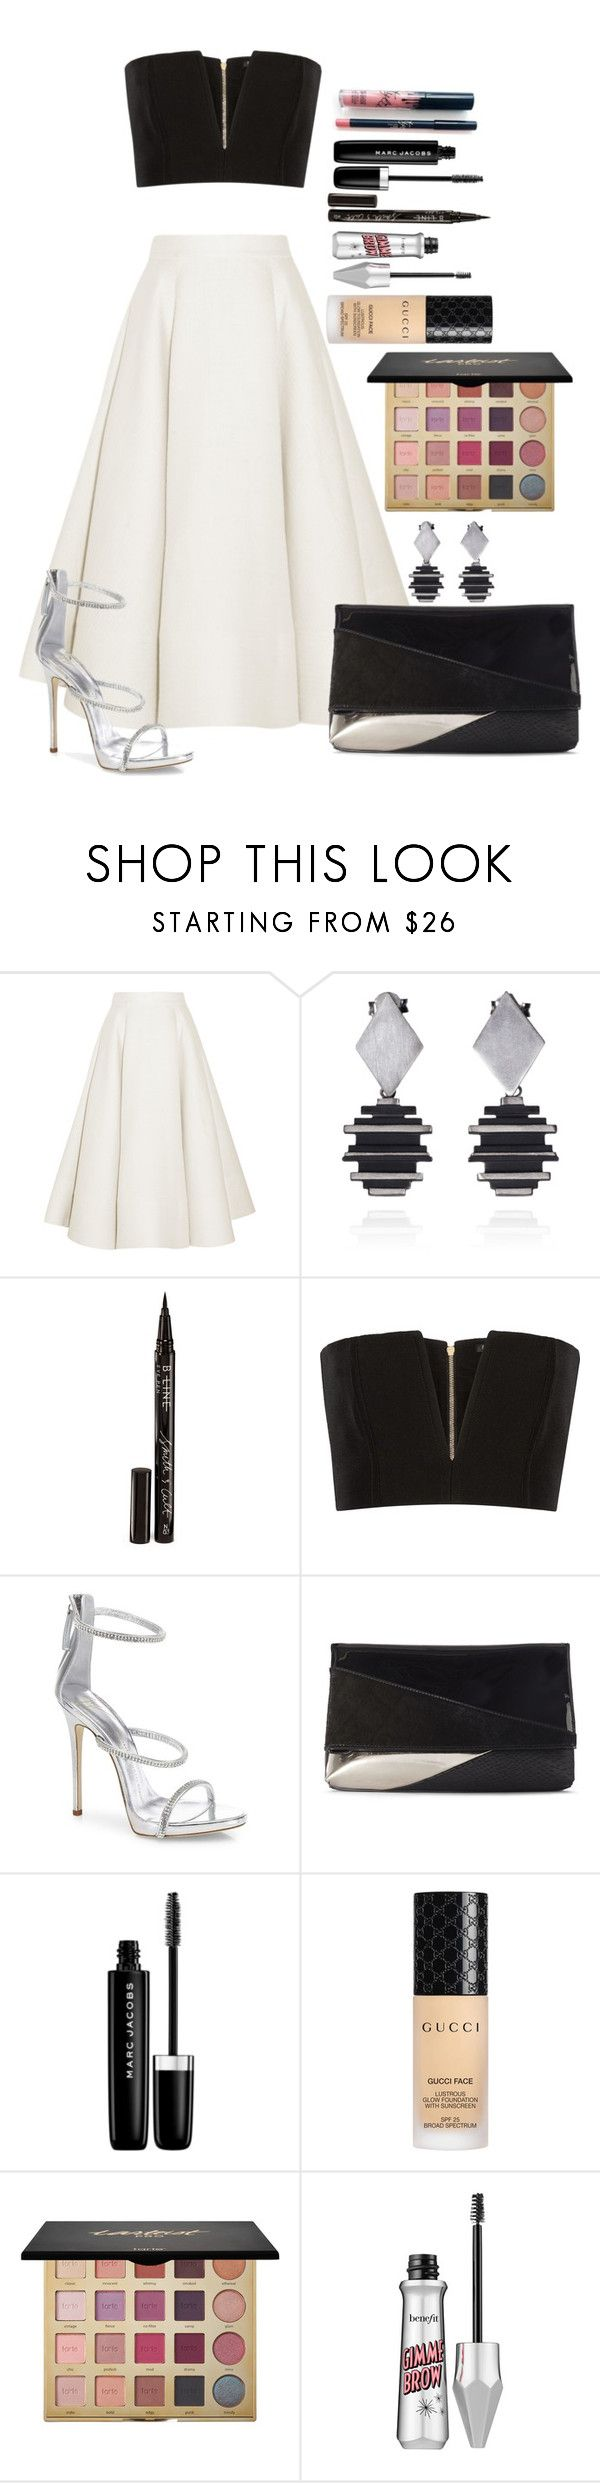 """Untitled #1686"" by fabianarveloc on Polyvore featuring Kylie Cosmetics, Roksanda, Smith & Cult, Balmain, Giuseppe Zanotti, Marc Jacobs, Gucci and tarte"